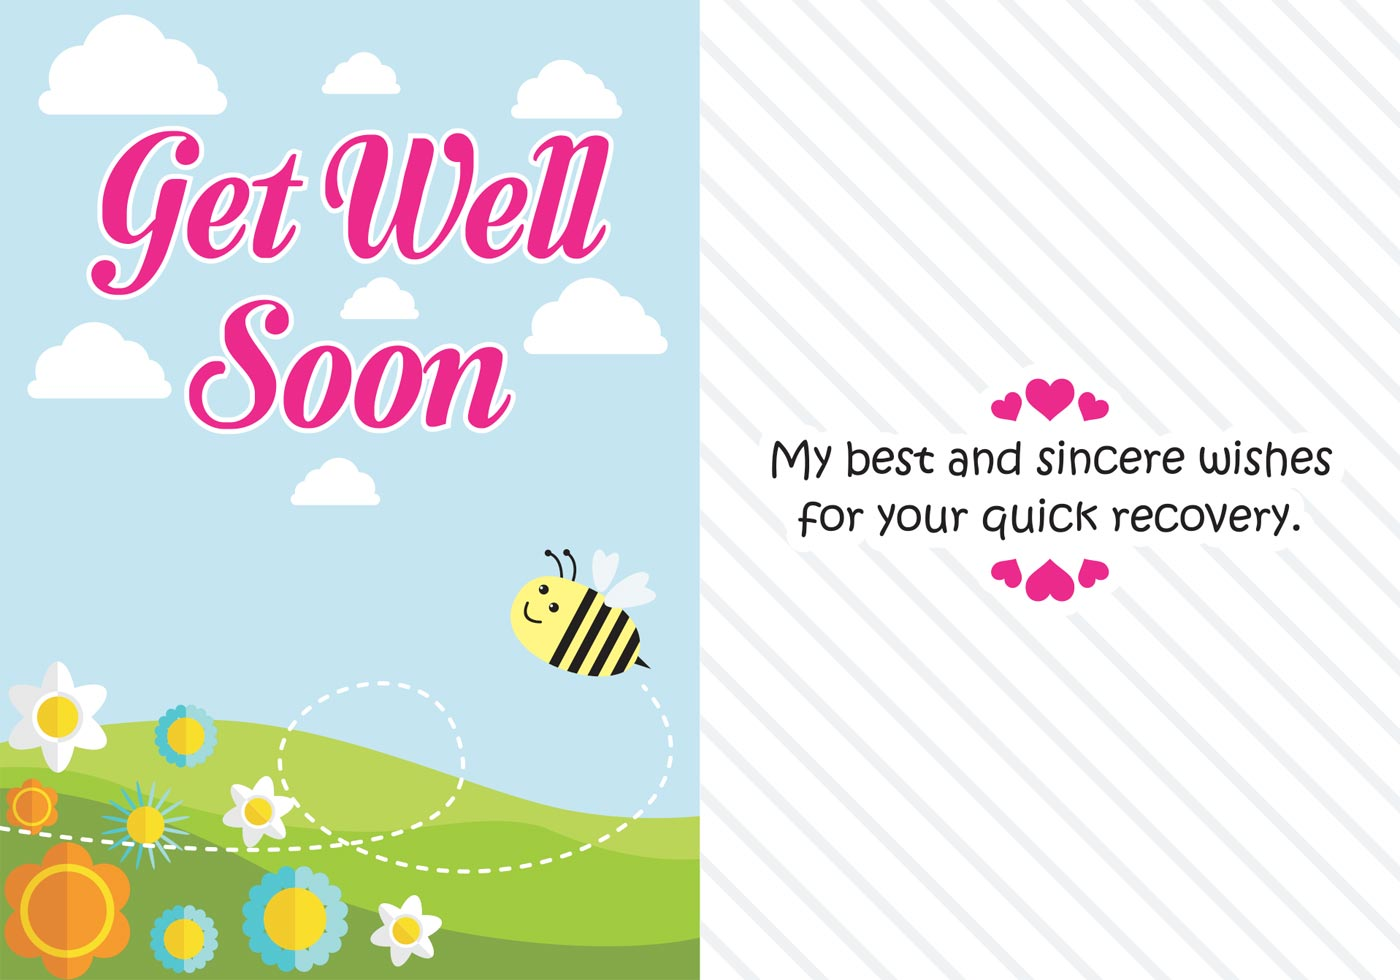 Get Well Soon Cards Free Vector Art 25649 Free Downloads